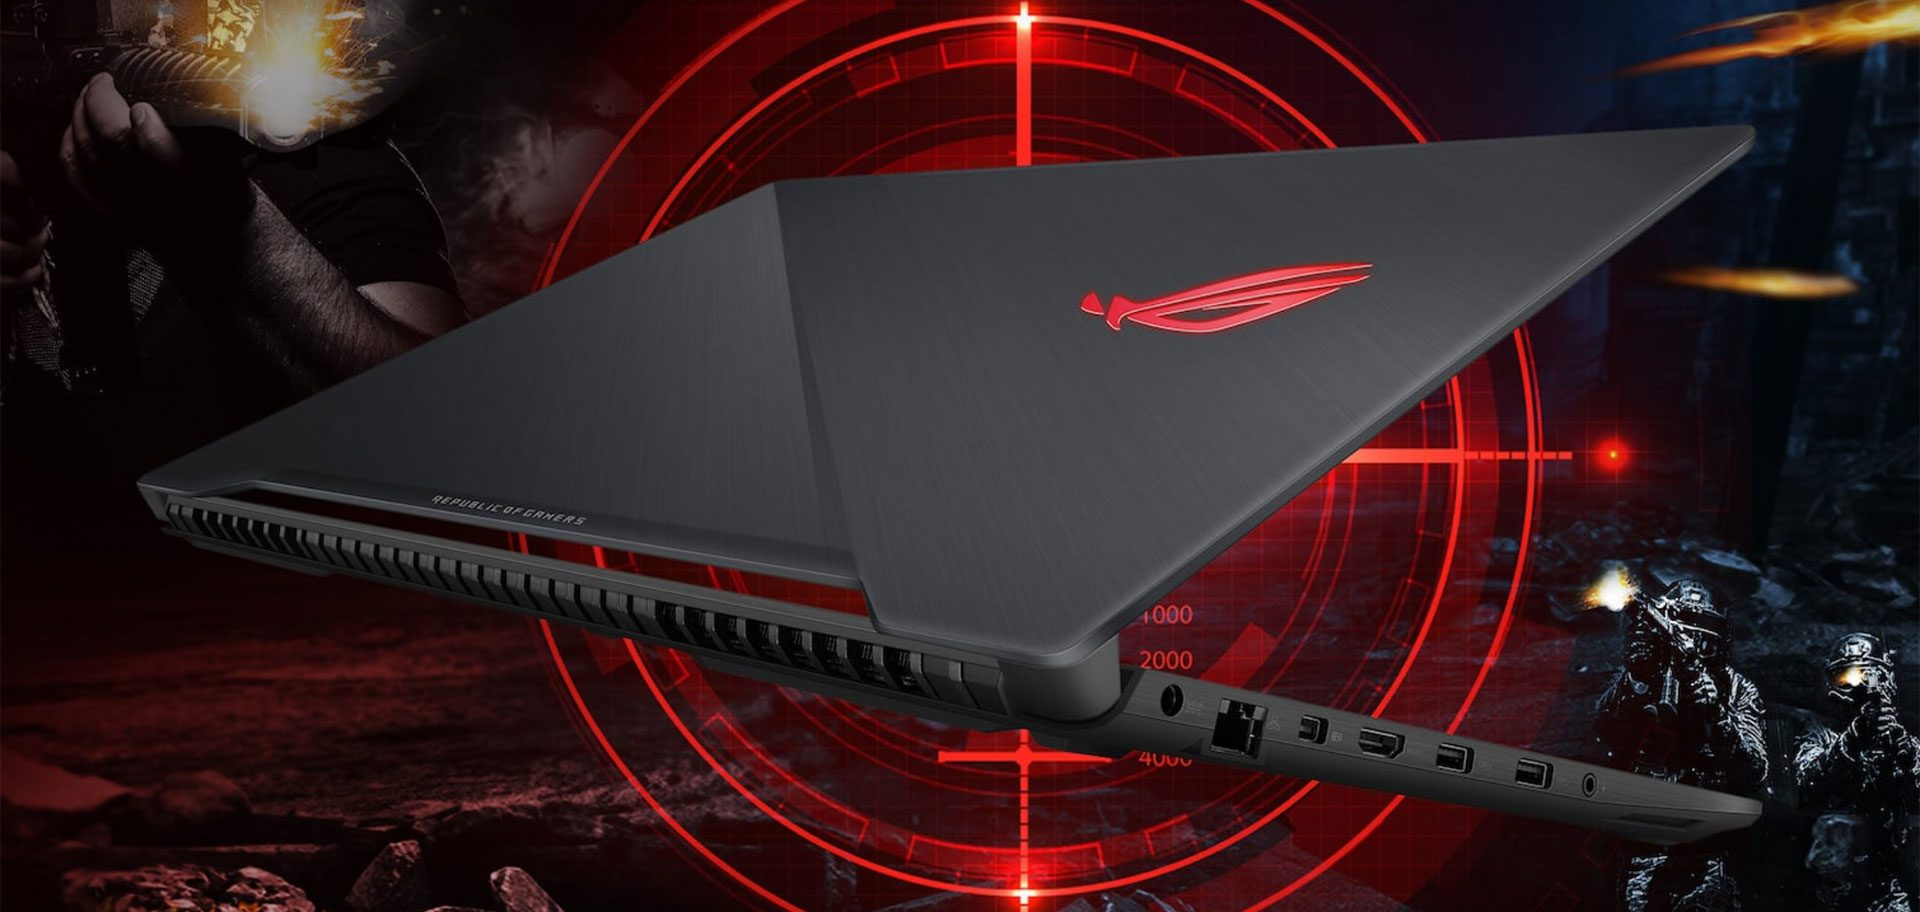 Asus ROG Strix GL503VD reviewed - what to expect and what